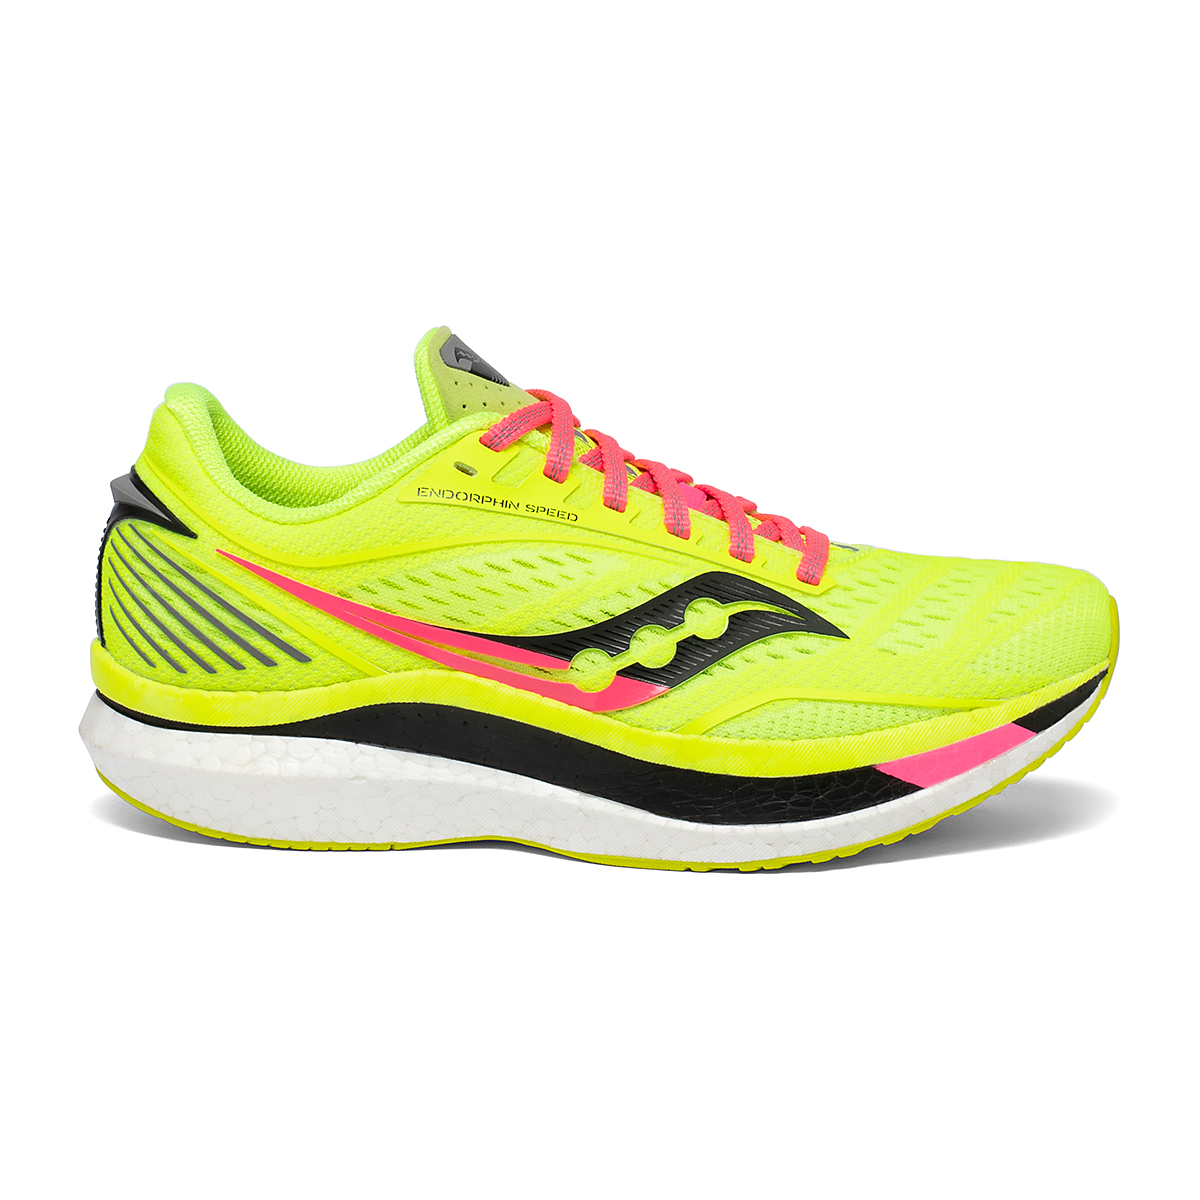 Women's Saucony VIZIPRO Speed Endorphin Speed Running Shoe - Color: Citron - Size: 5 - Width: Regular, Citron, large, image 1